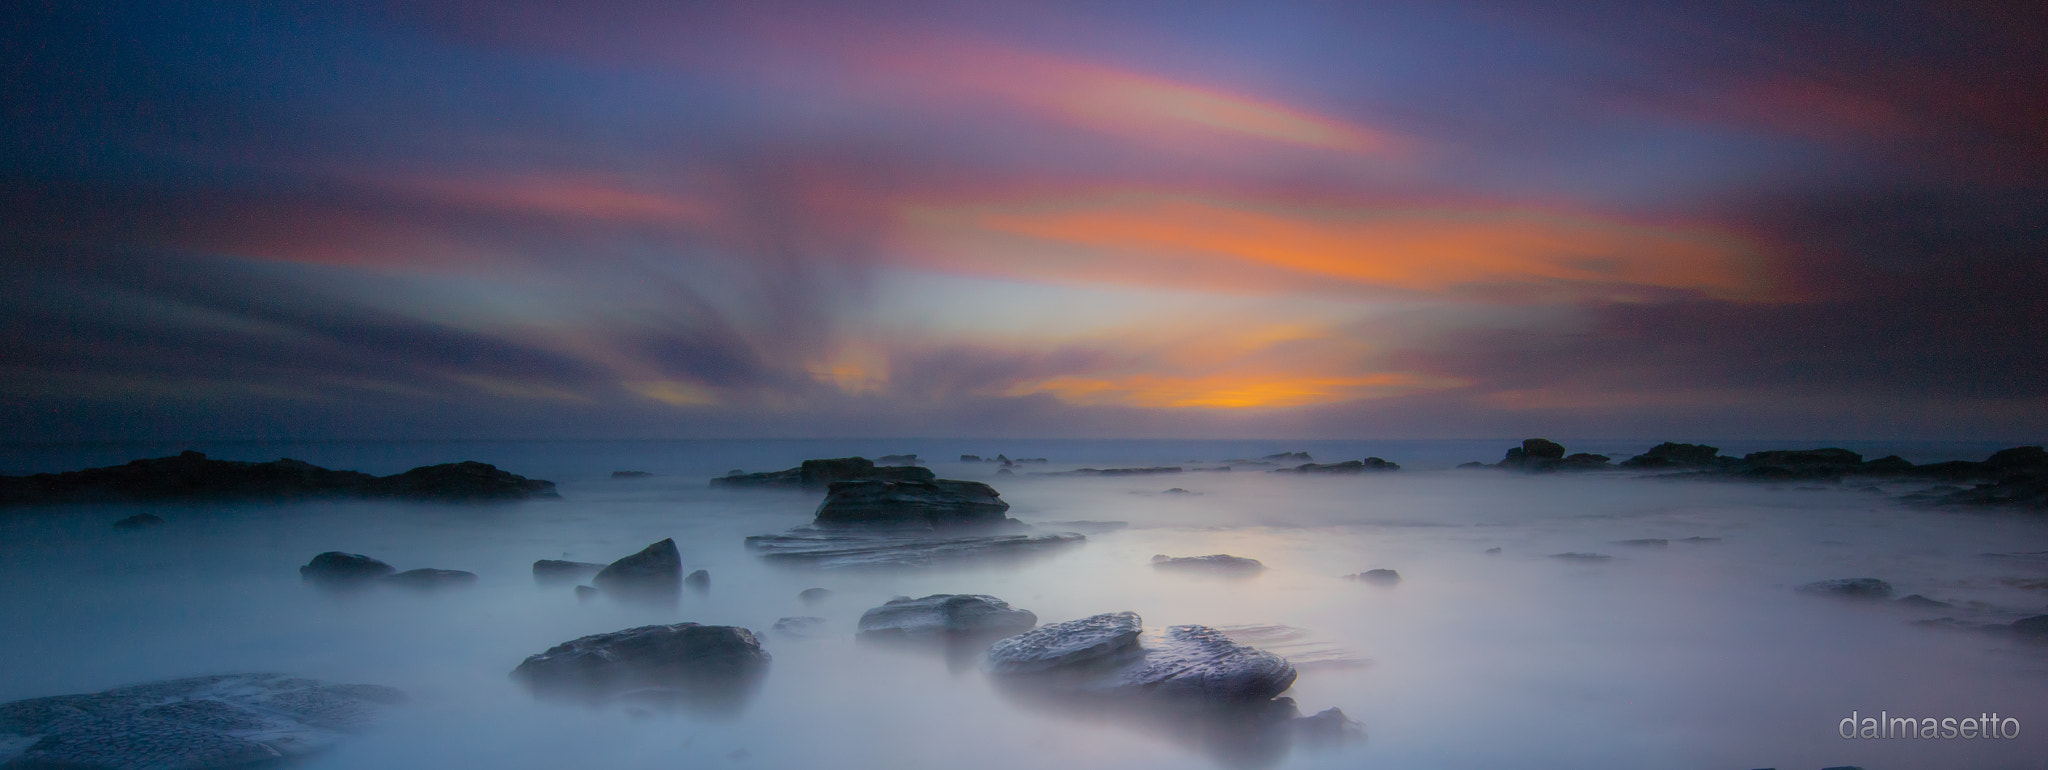 Photograph Painted beach by Tony Dal Masetto on 500px